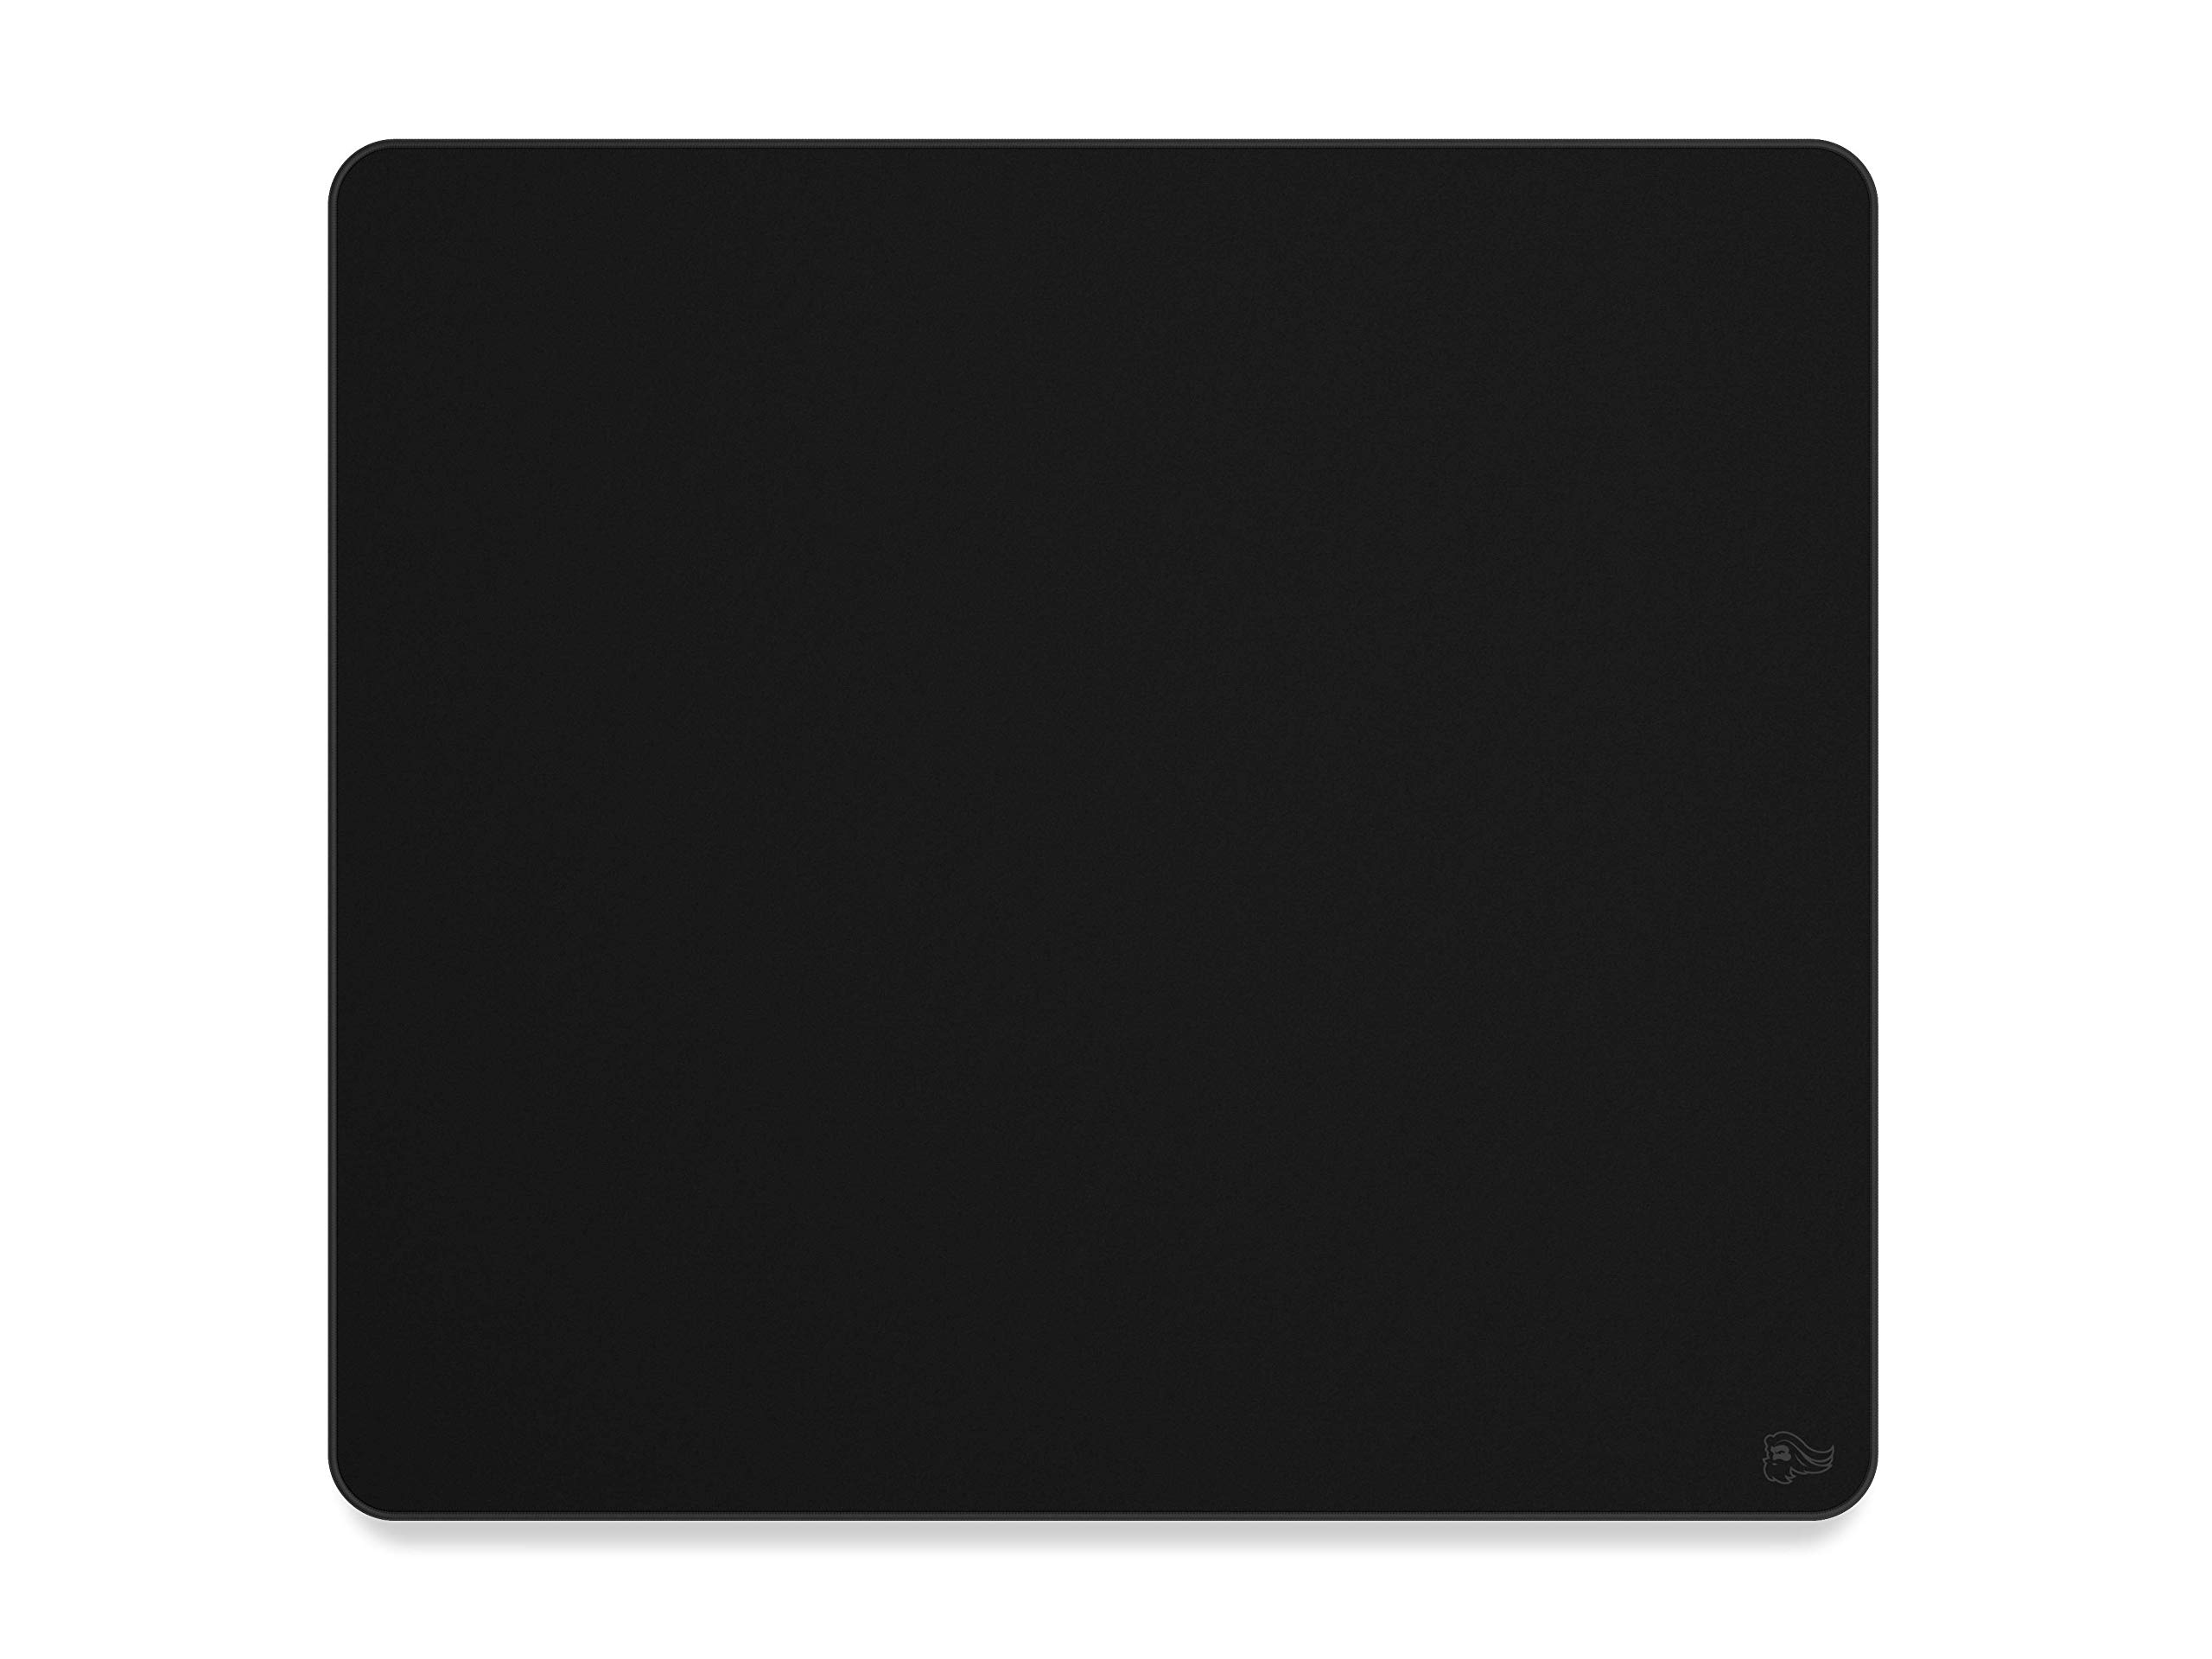 Mousepad XL Glorious XL Extended Gaming Mouse 40x45cm